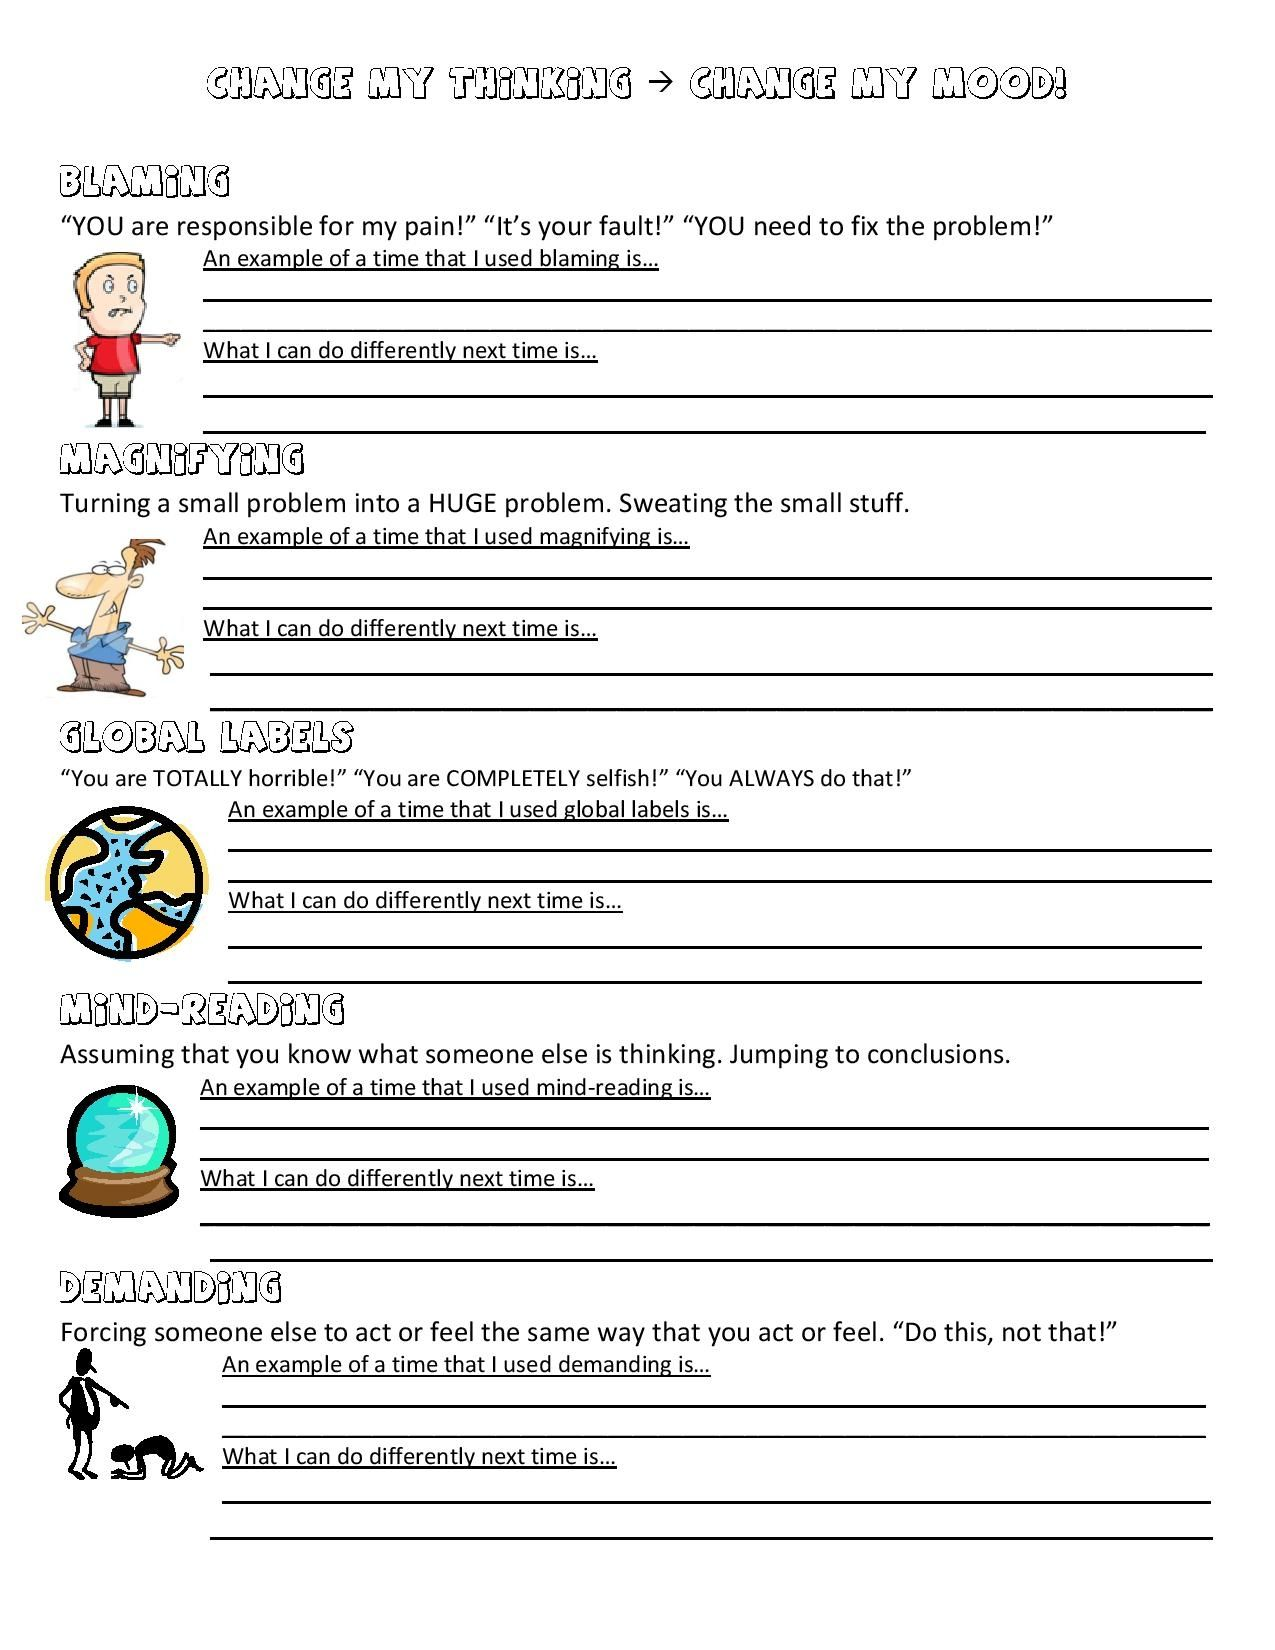 Printables Anger Management Worksheets For Kids 1000 images about anger management on pinterest anxiety activities and for kids